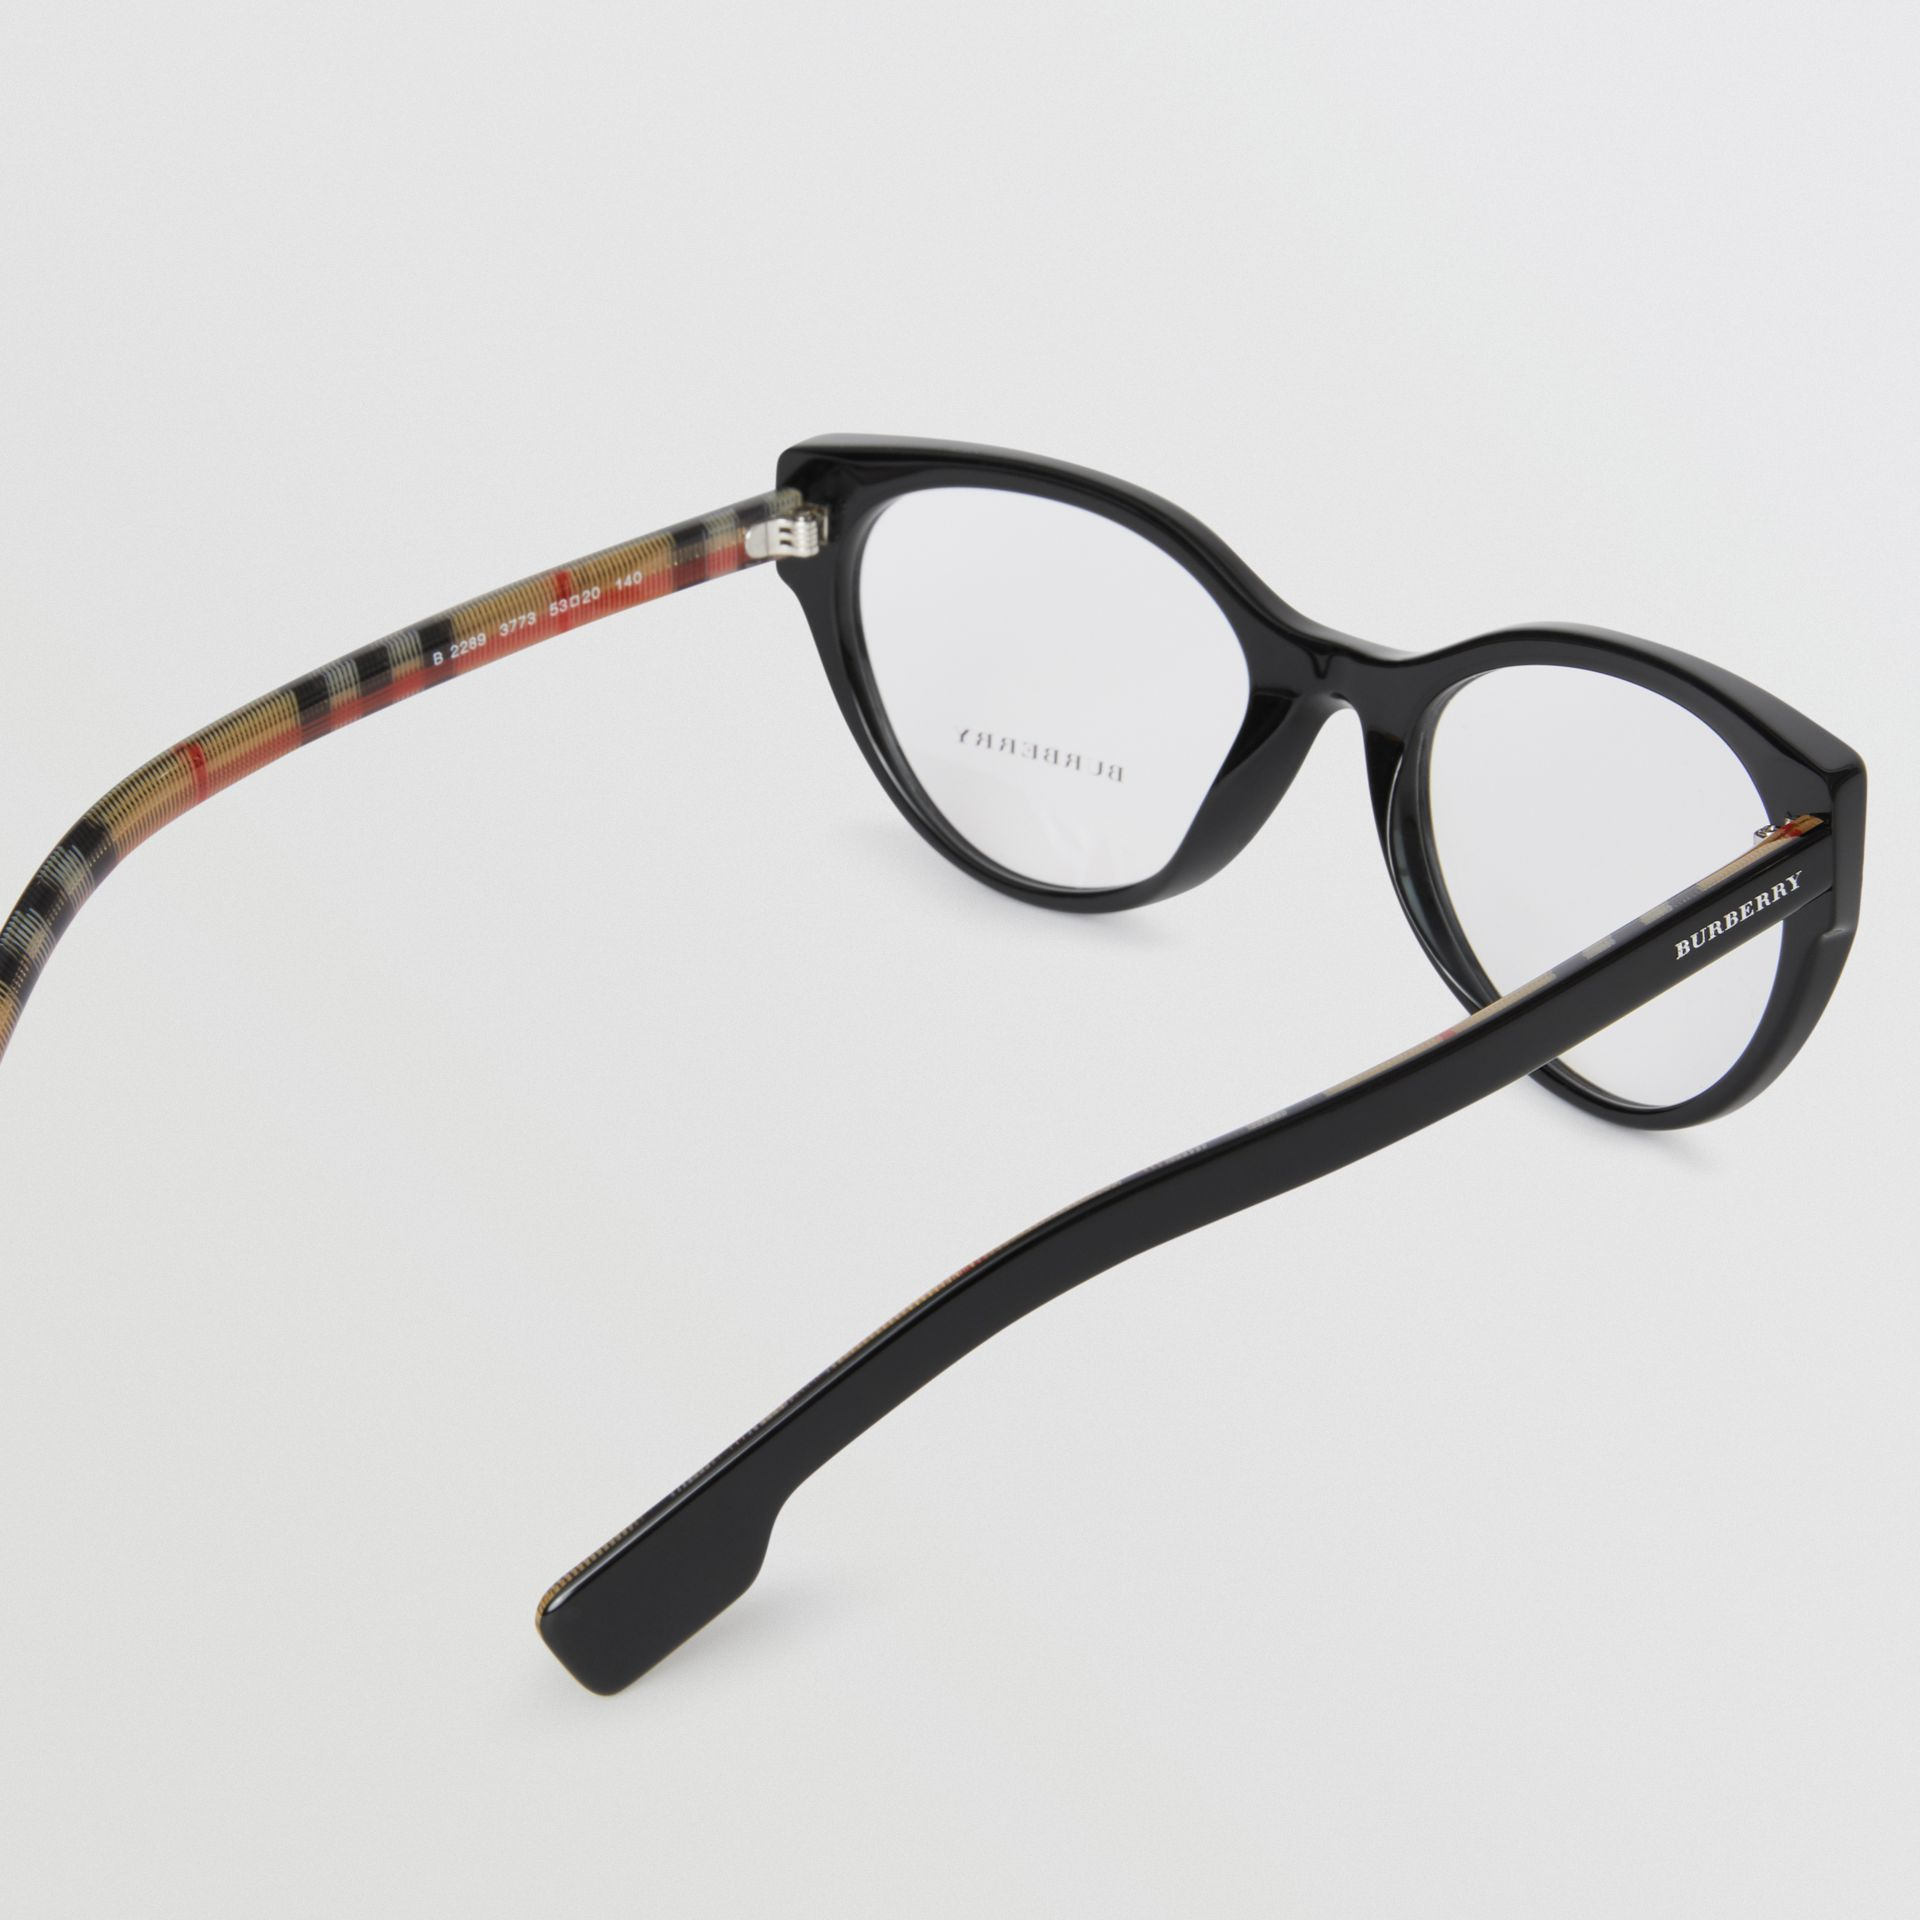 Vintage Check Detail Cat-eye Optical Frames in Black - Women | Burberry - gallery image 4